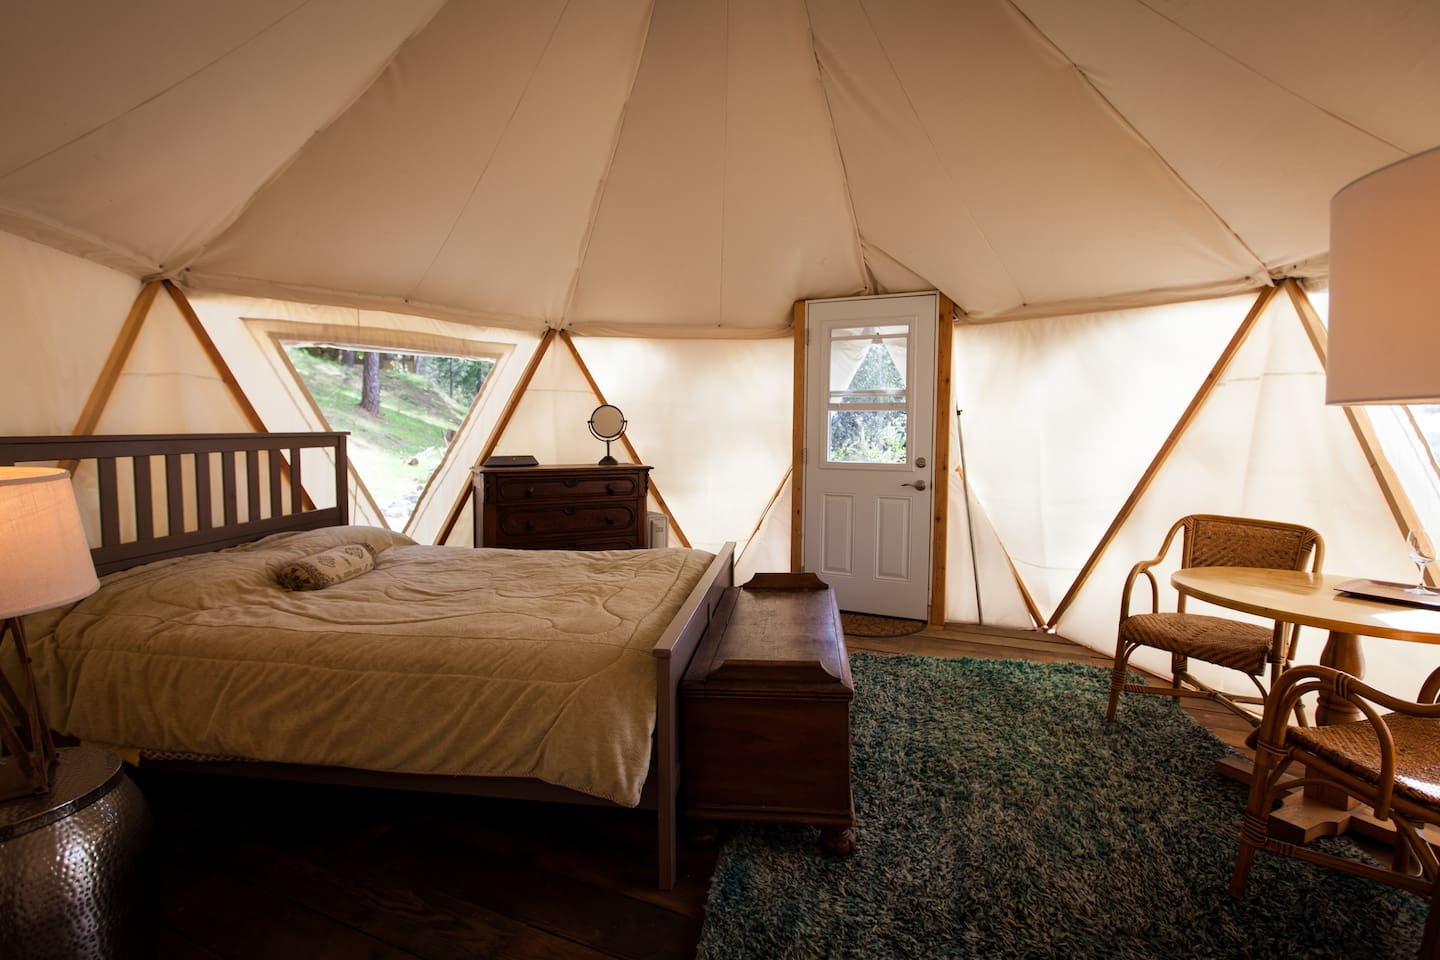 The average cost to stay in this yurt is $135